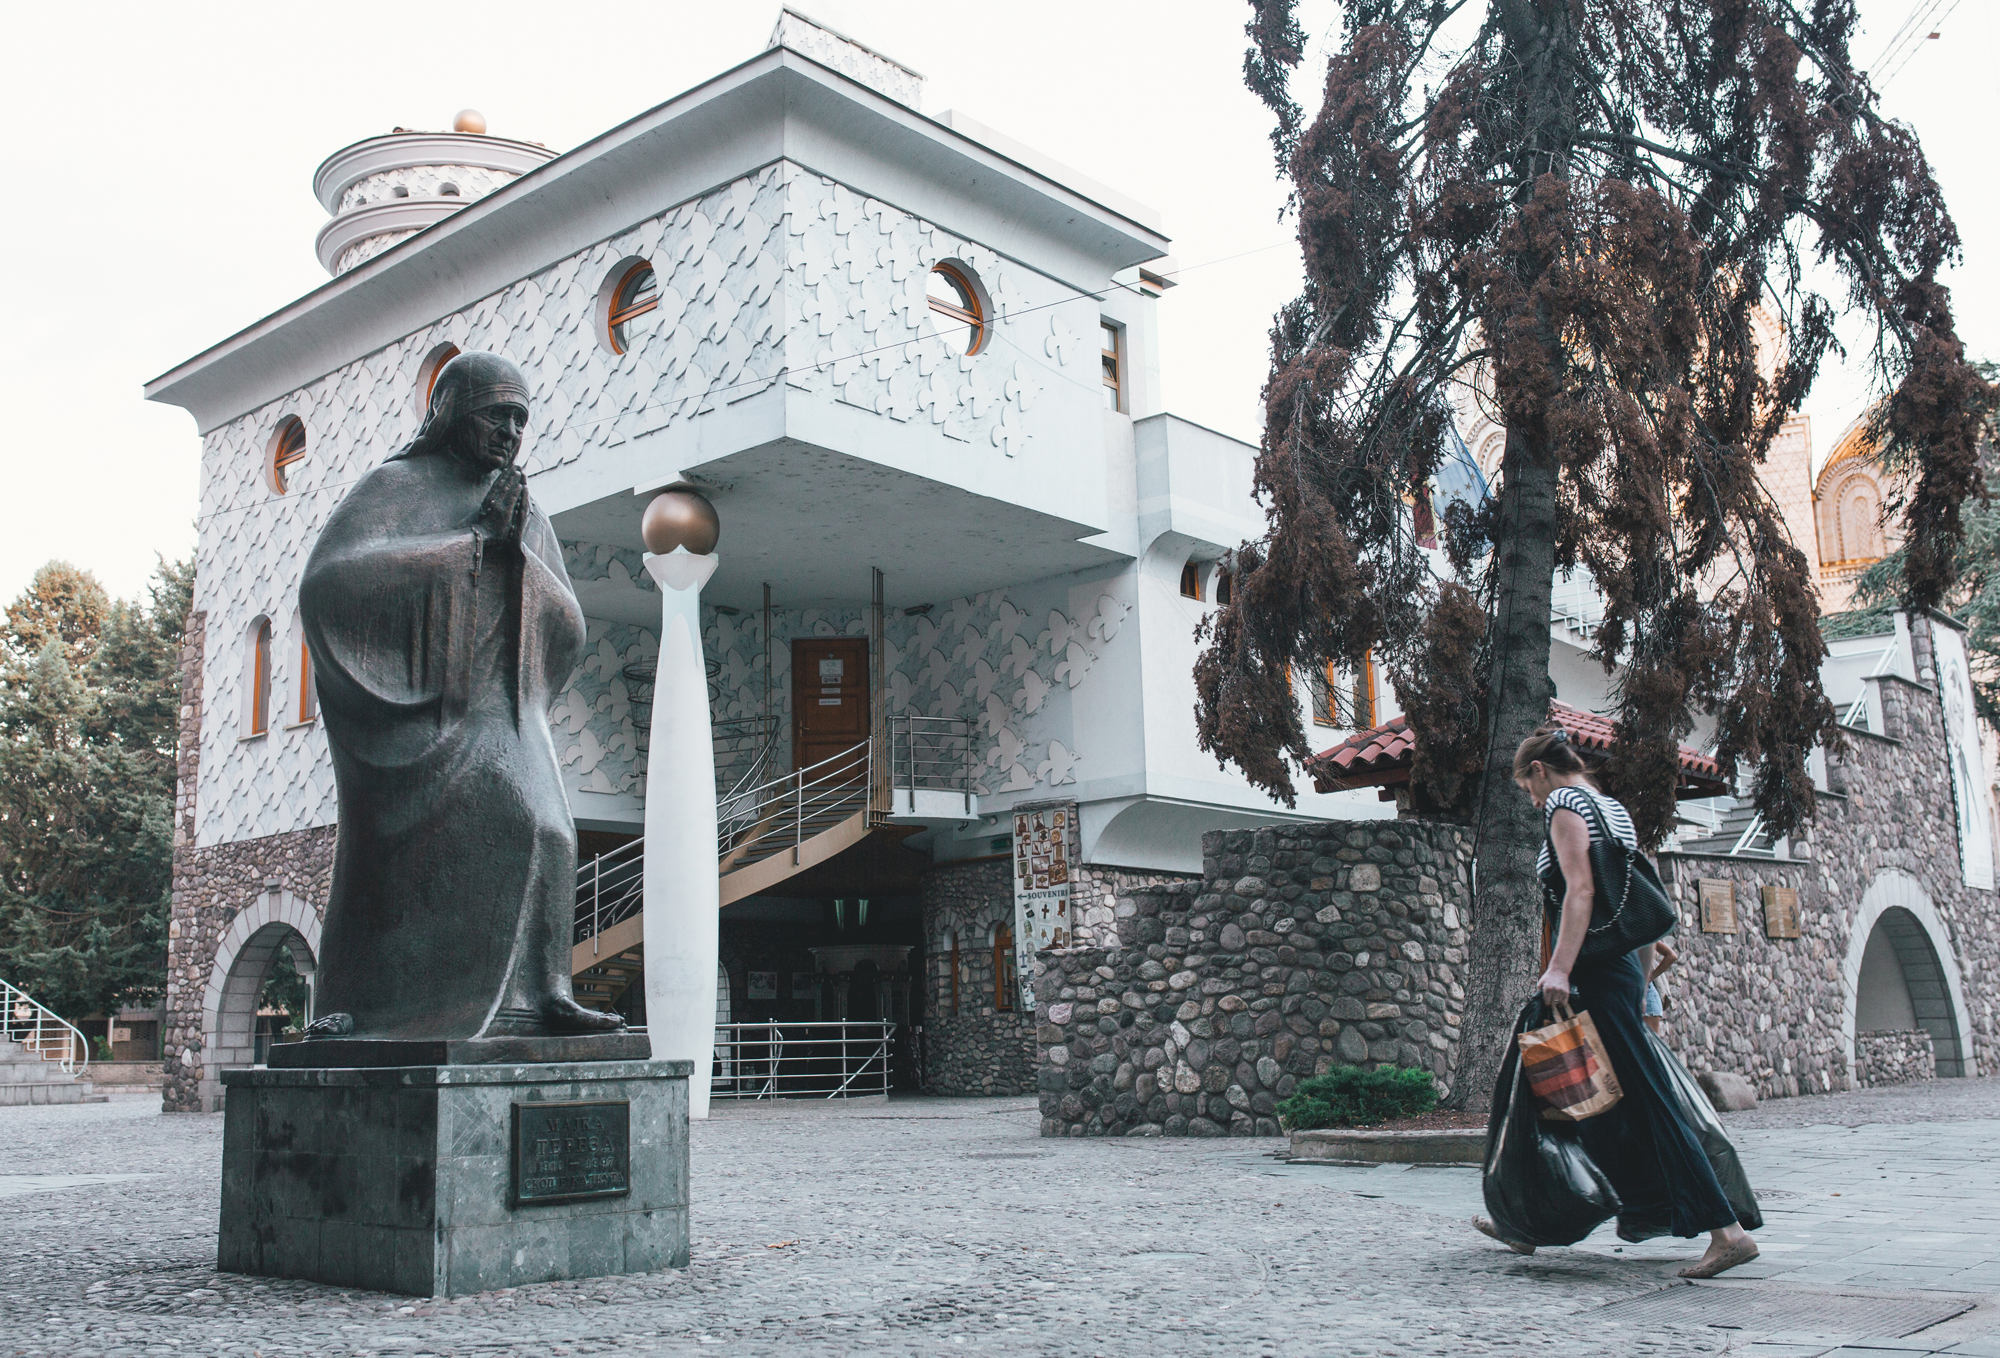 A statue of Mother Teresa in front of Memorial House of Mother Teresa in Skopje, Macedonia.